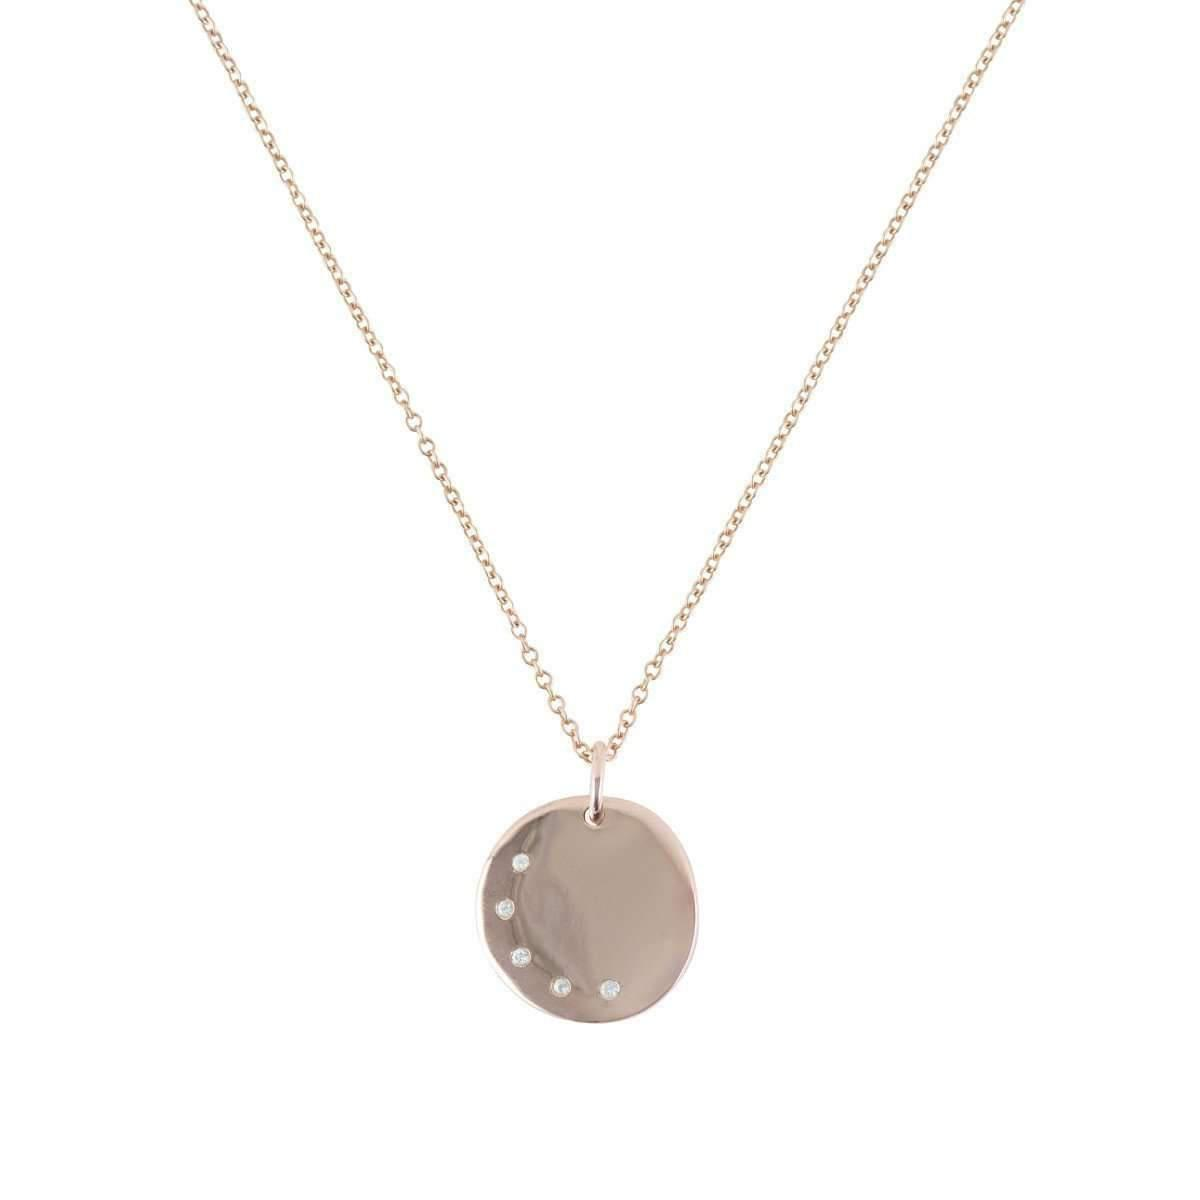 Deborah Blyth Jewellery Personalised Rose Gold Disc Pendant With White Sapphires HNGSZCyLAG